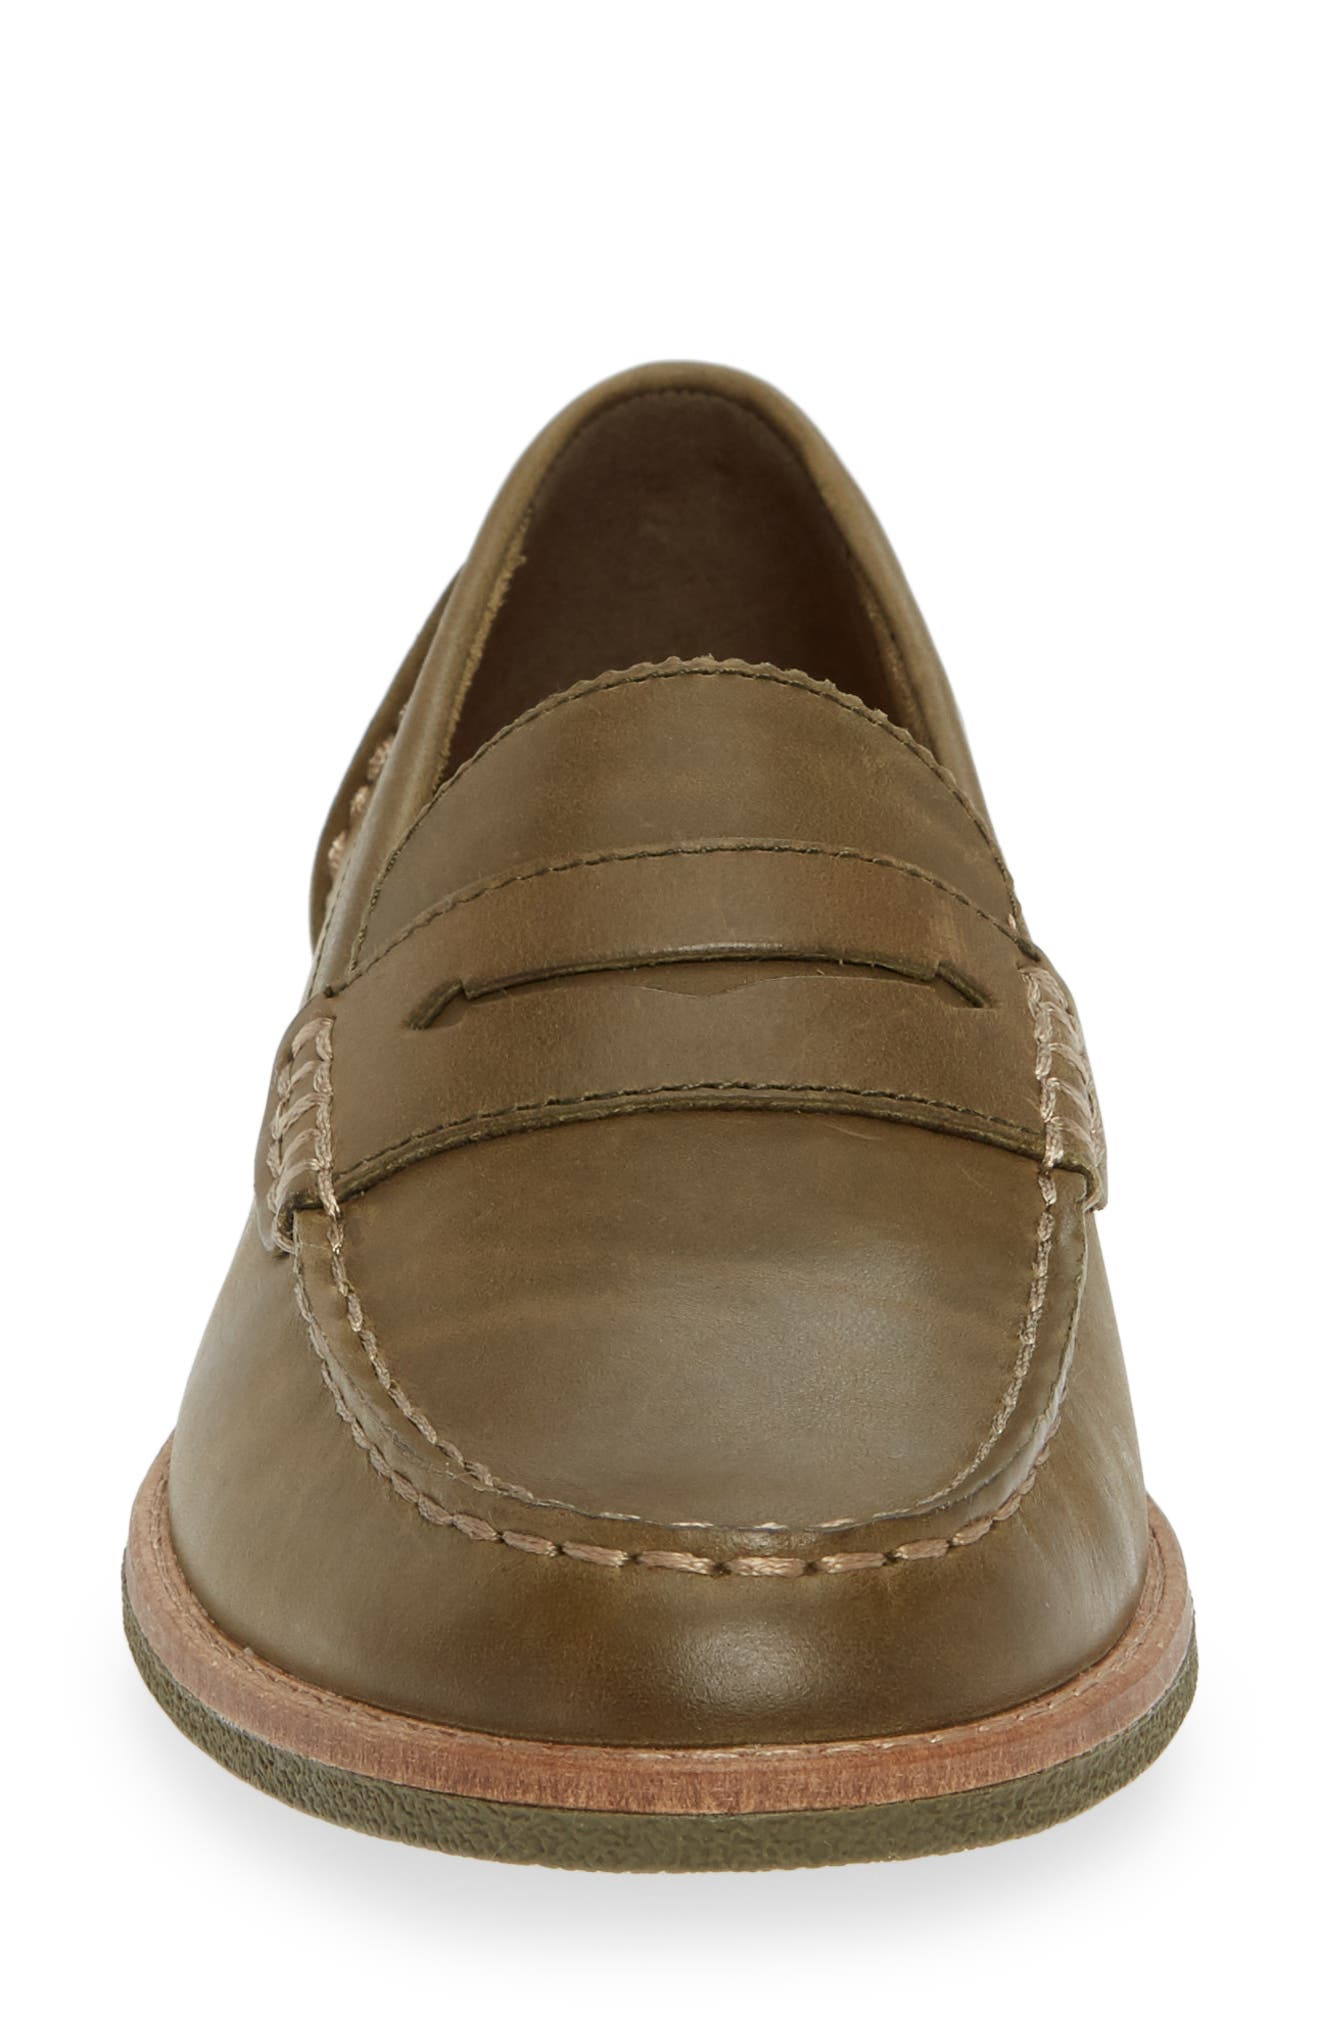 Seaport Penny Loafer,                             Alternate thumbnail 4, color,                             OLIVE LEATHER